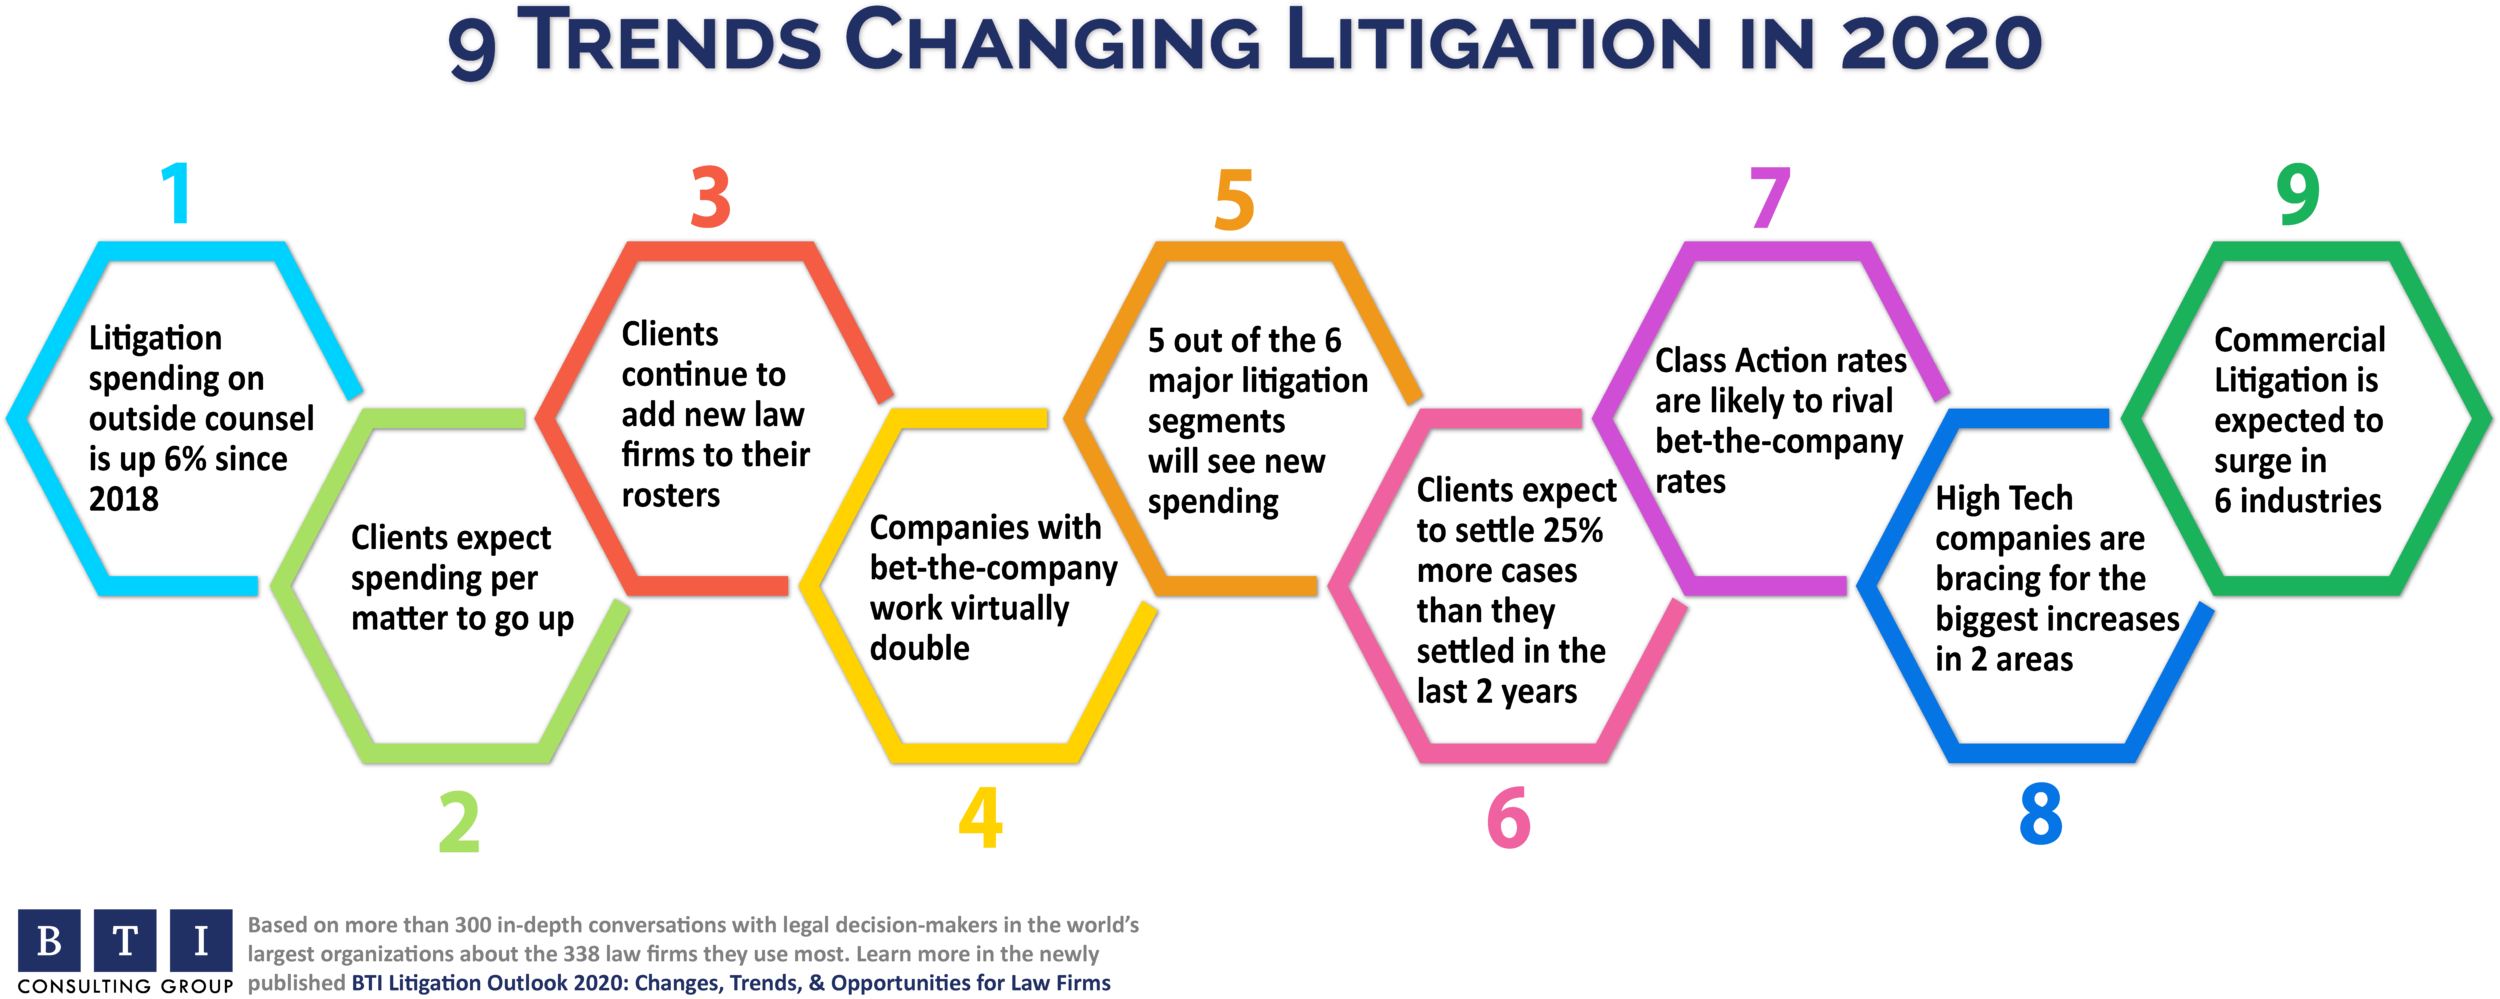 Litigationtrends_2020_chart_header.png